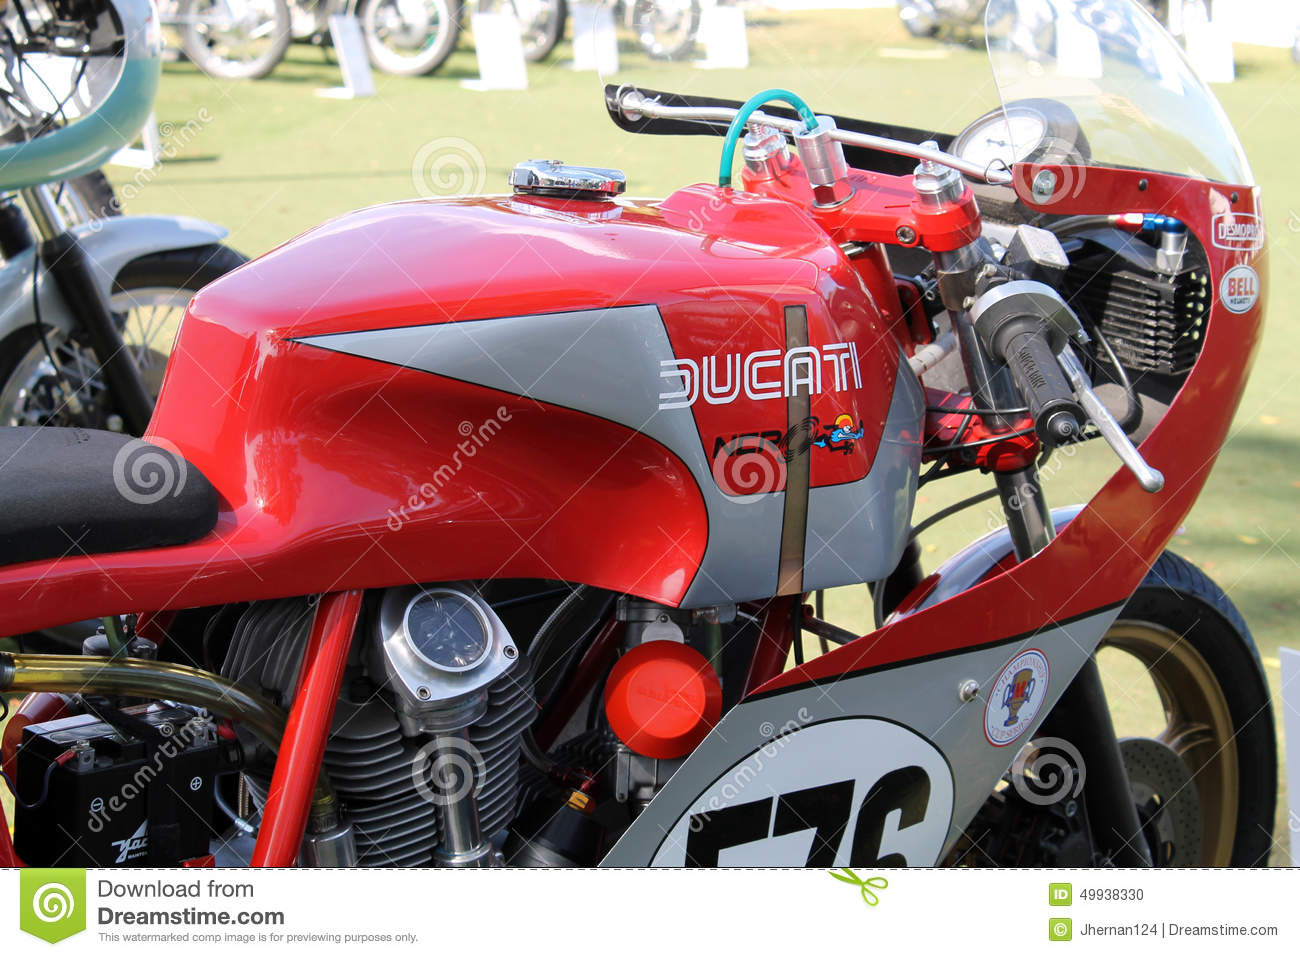 Gas Prices In Florida >> Classic Italian Racing Motorcycle Editorial Image - Image ...